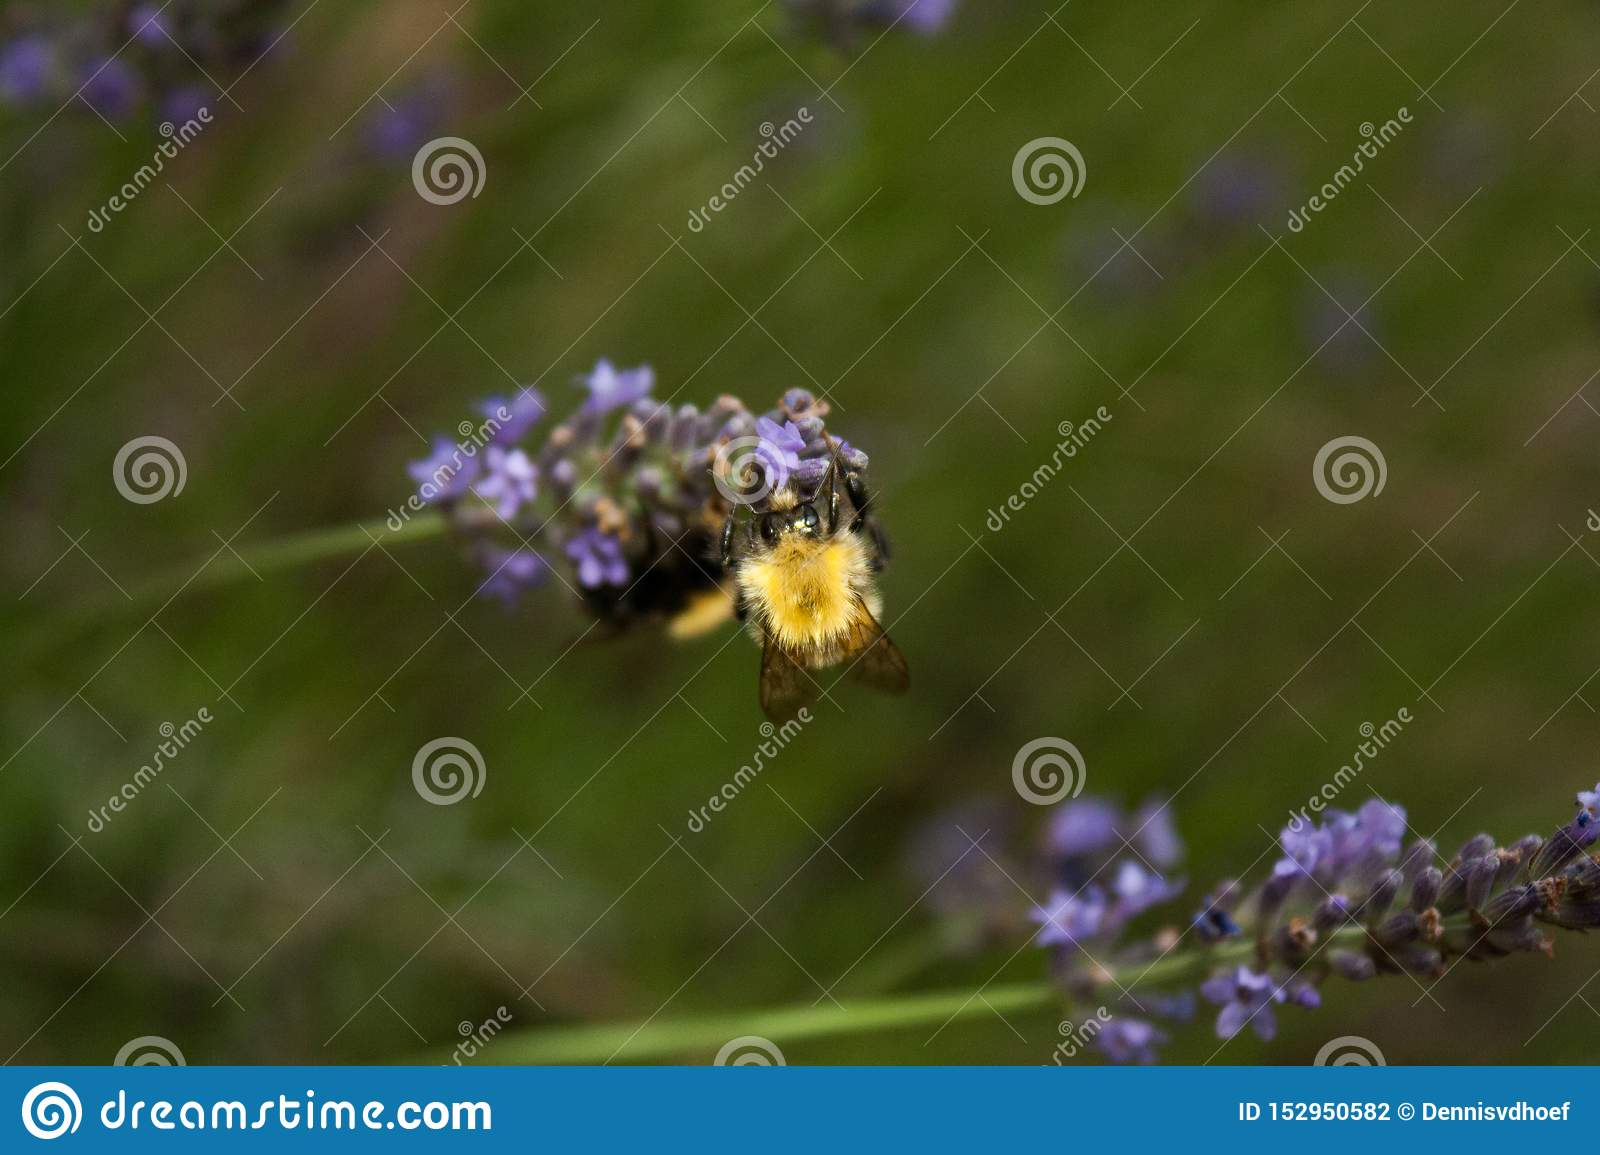 A bumblebee gathers nectar from a lavender flower.